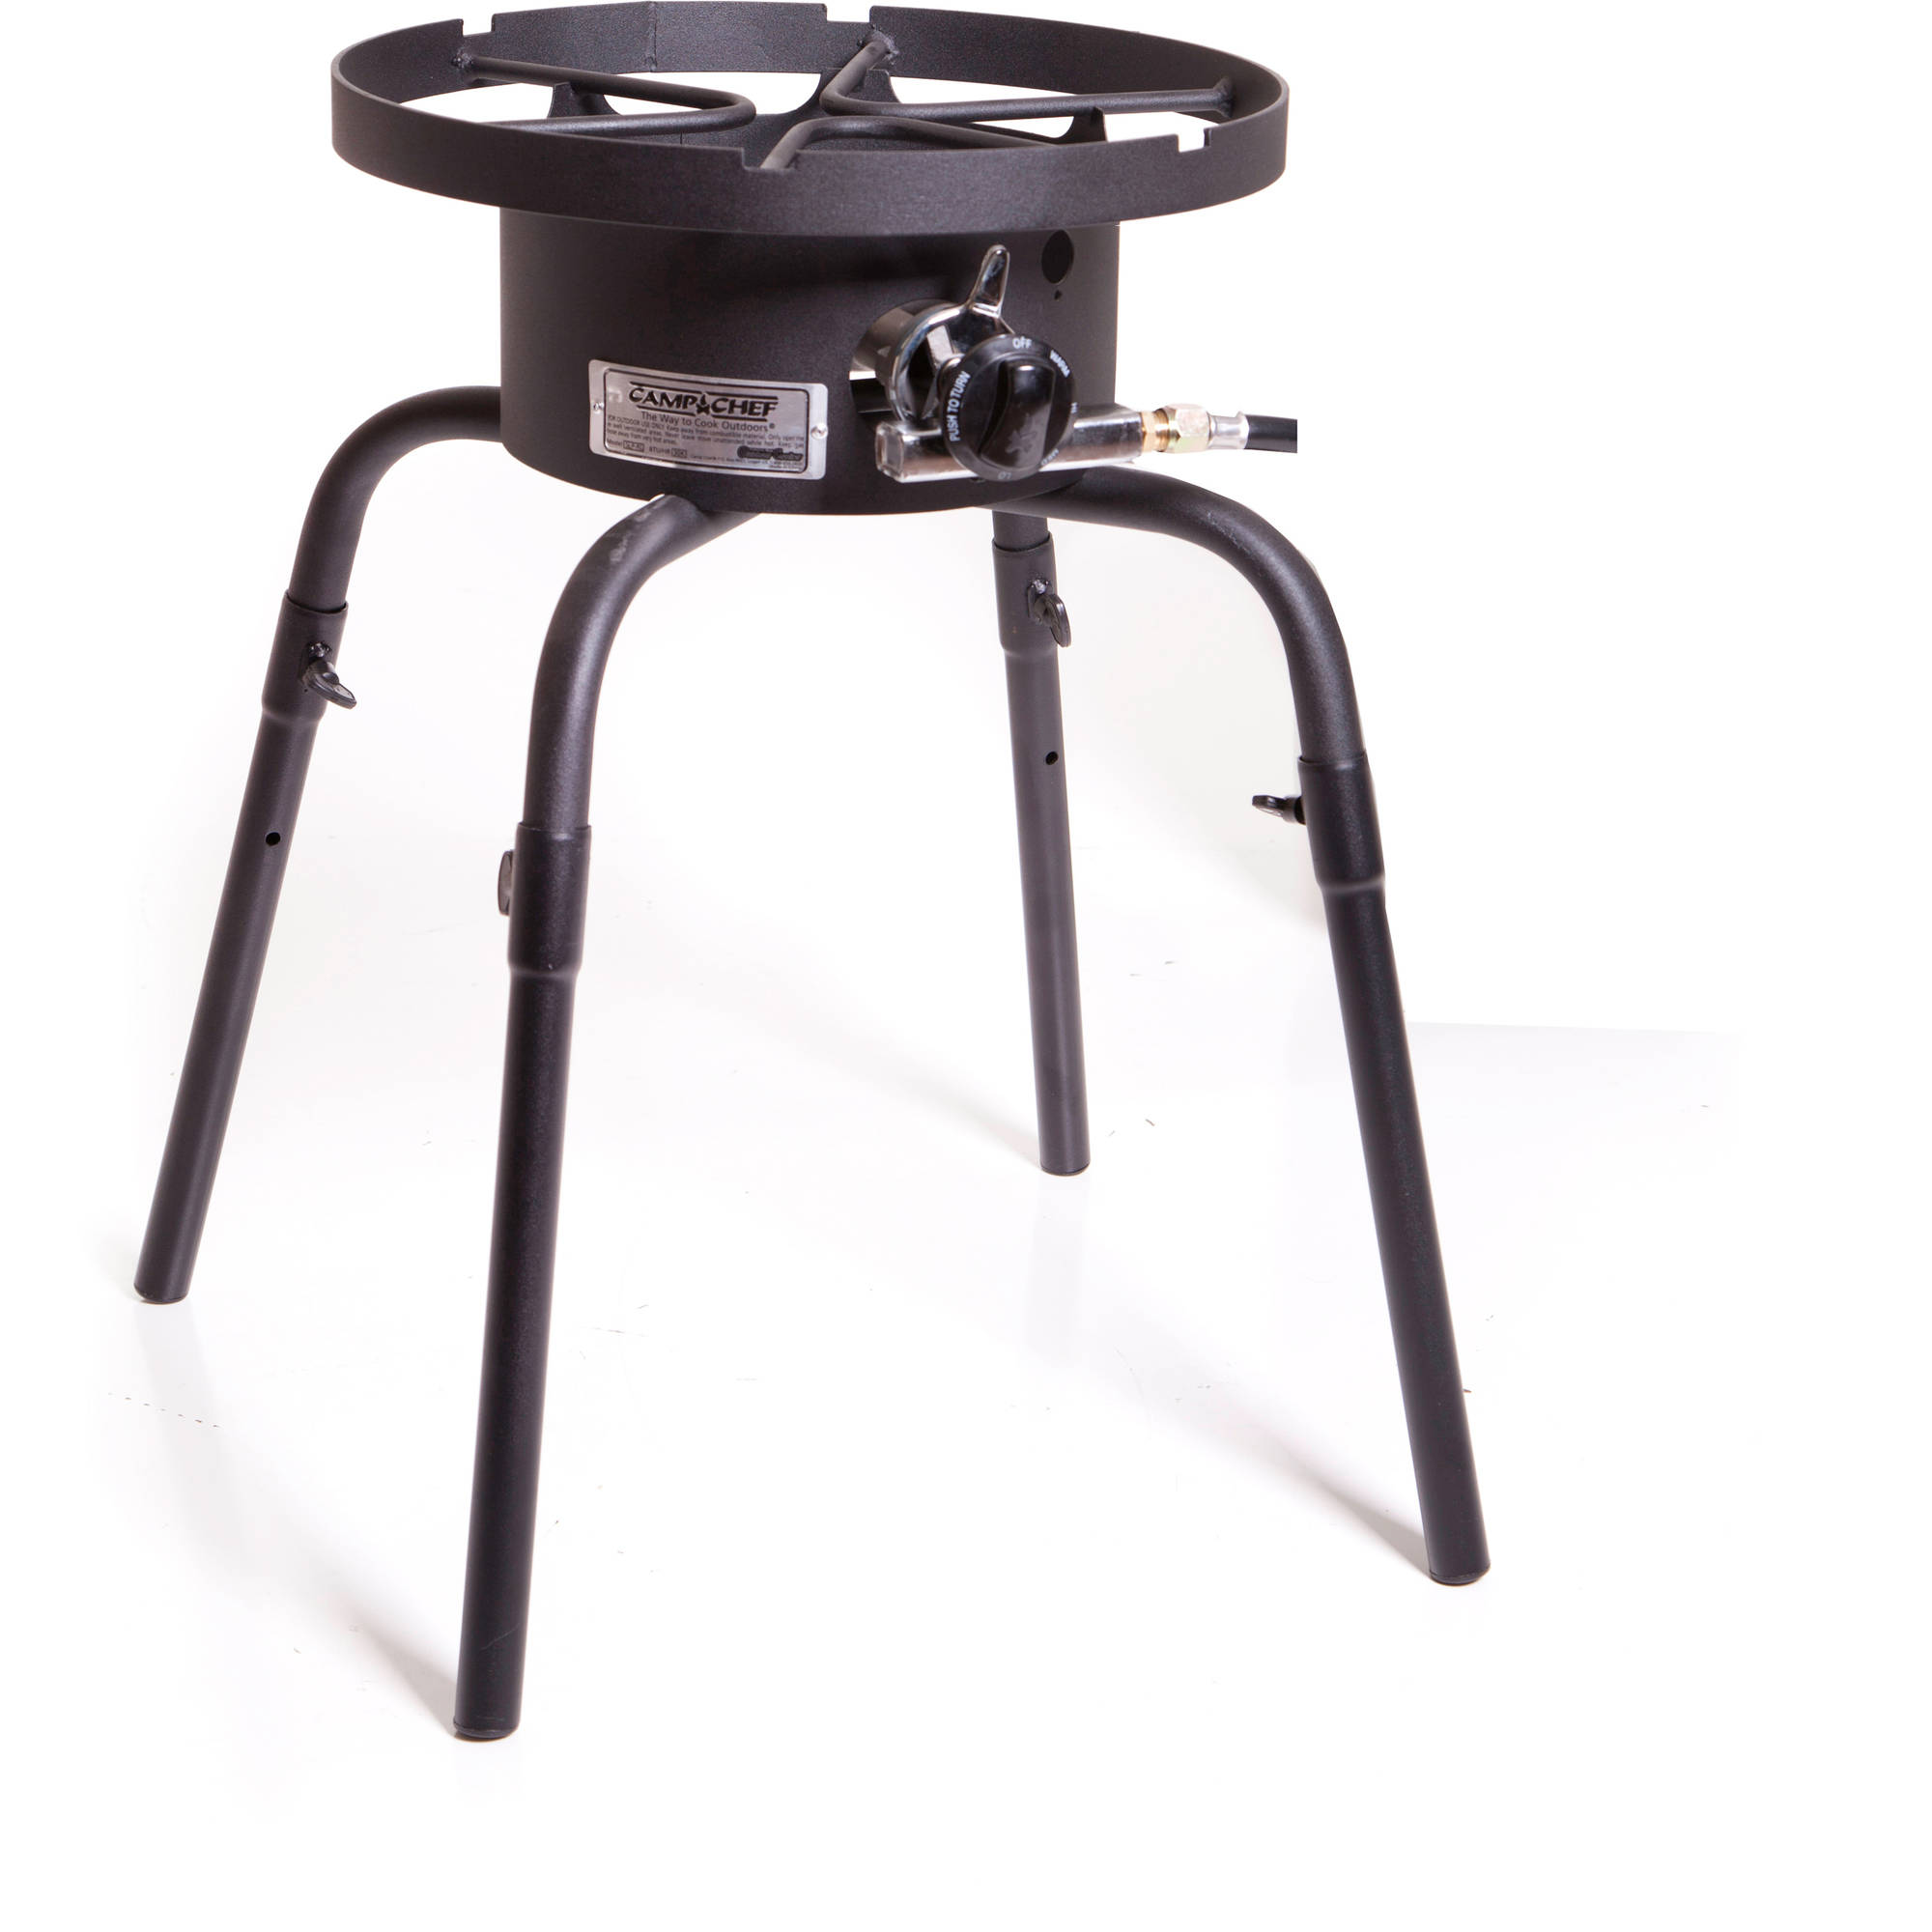 Camp Chef 30,000 BTU Universal Outdoor Single Burner Camp Stove